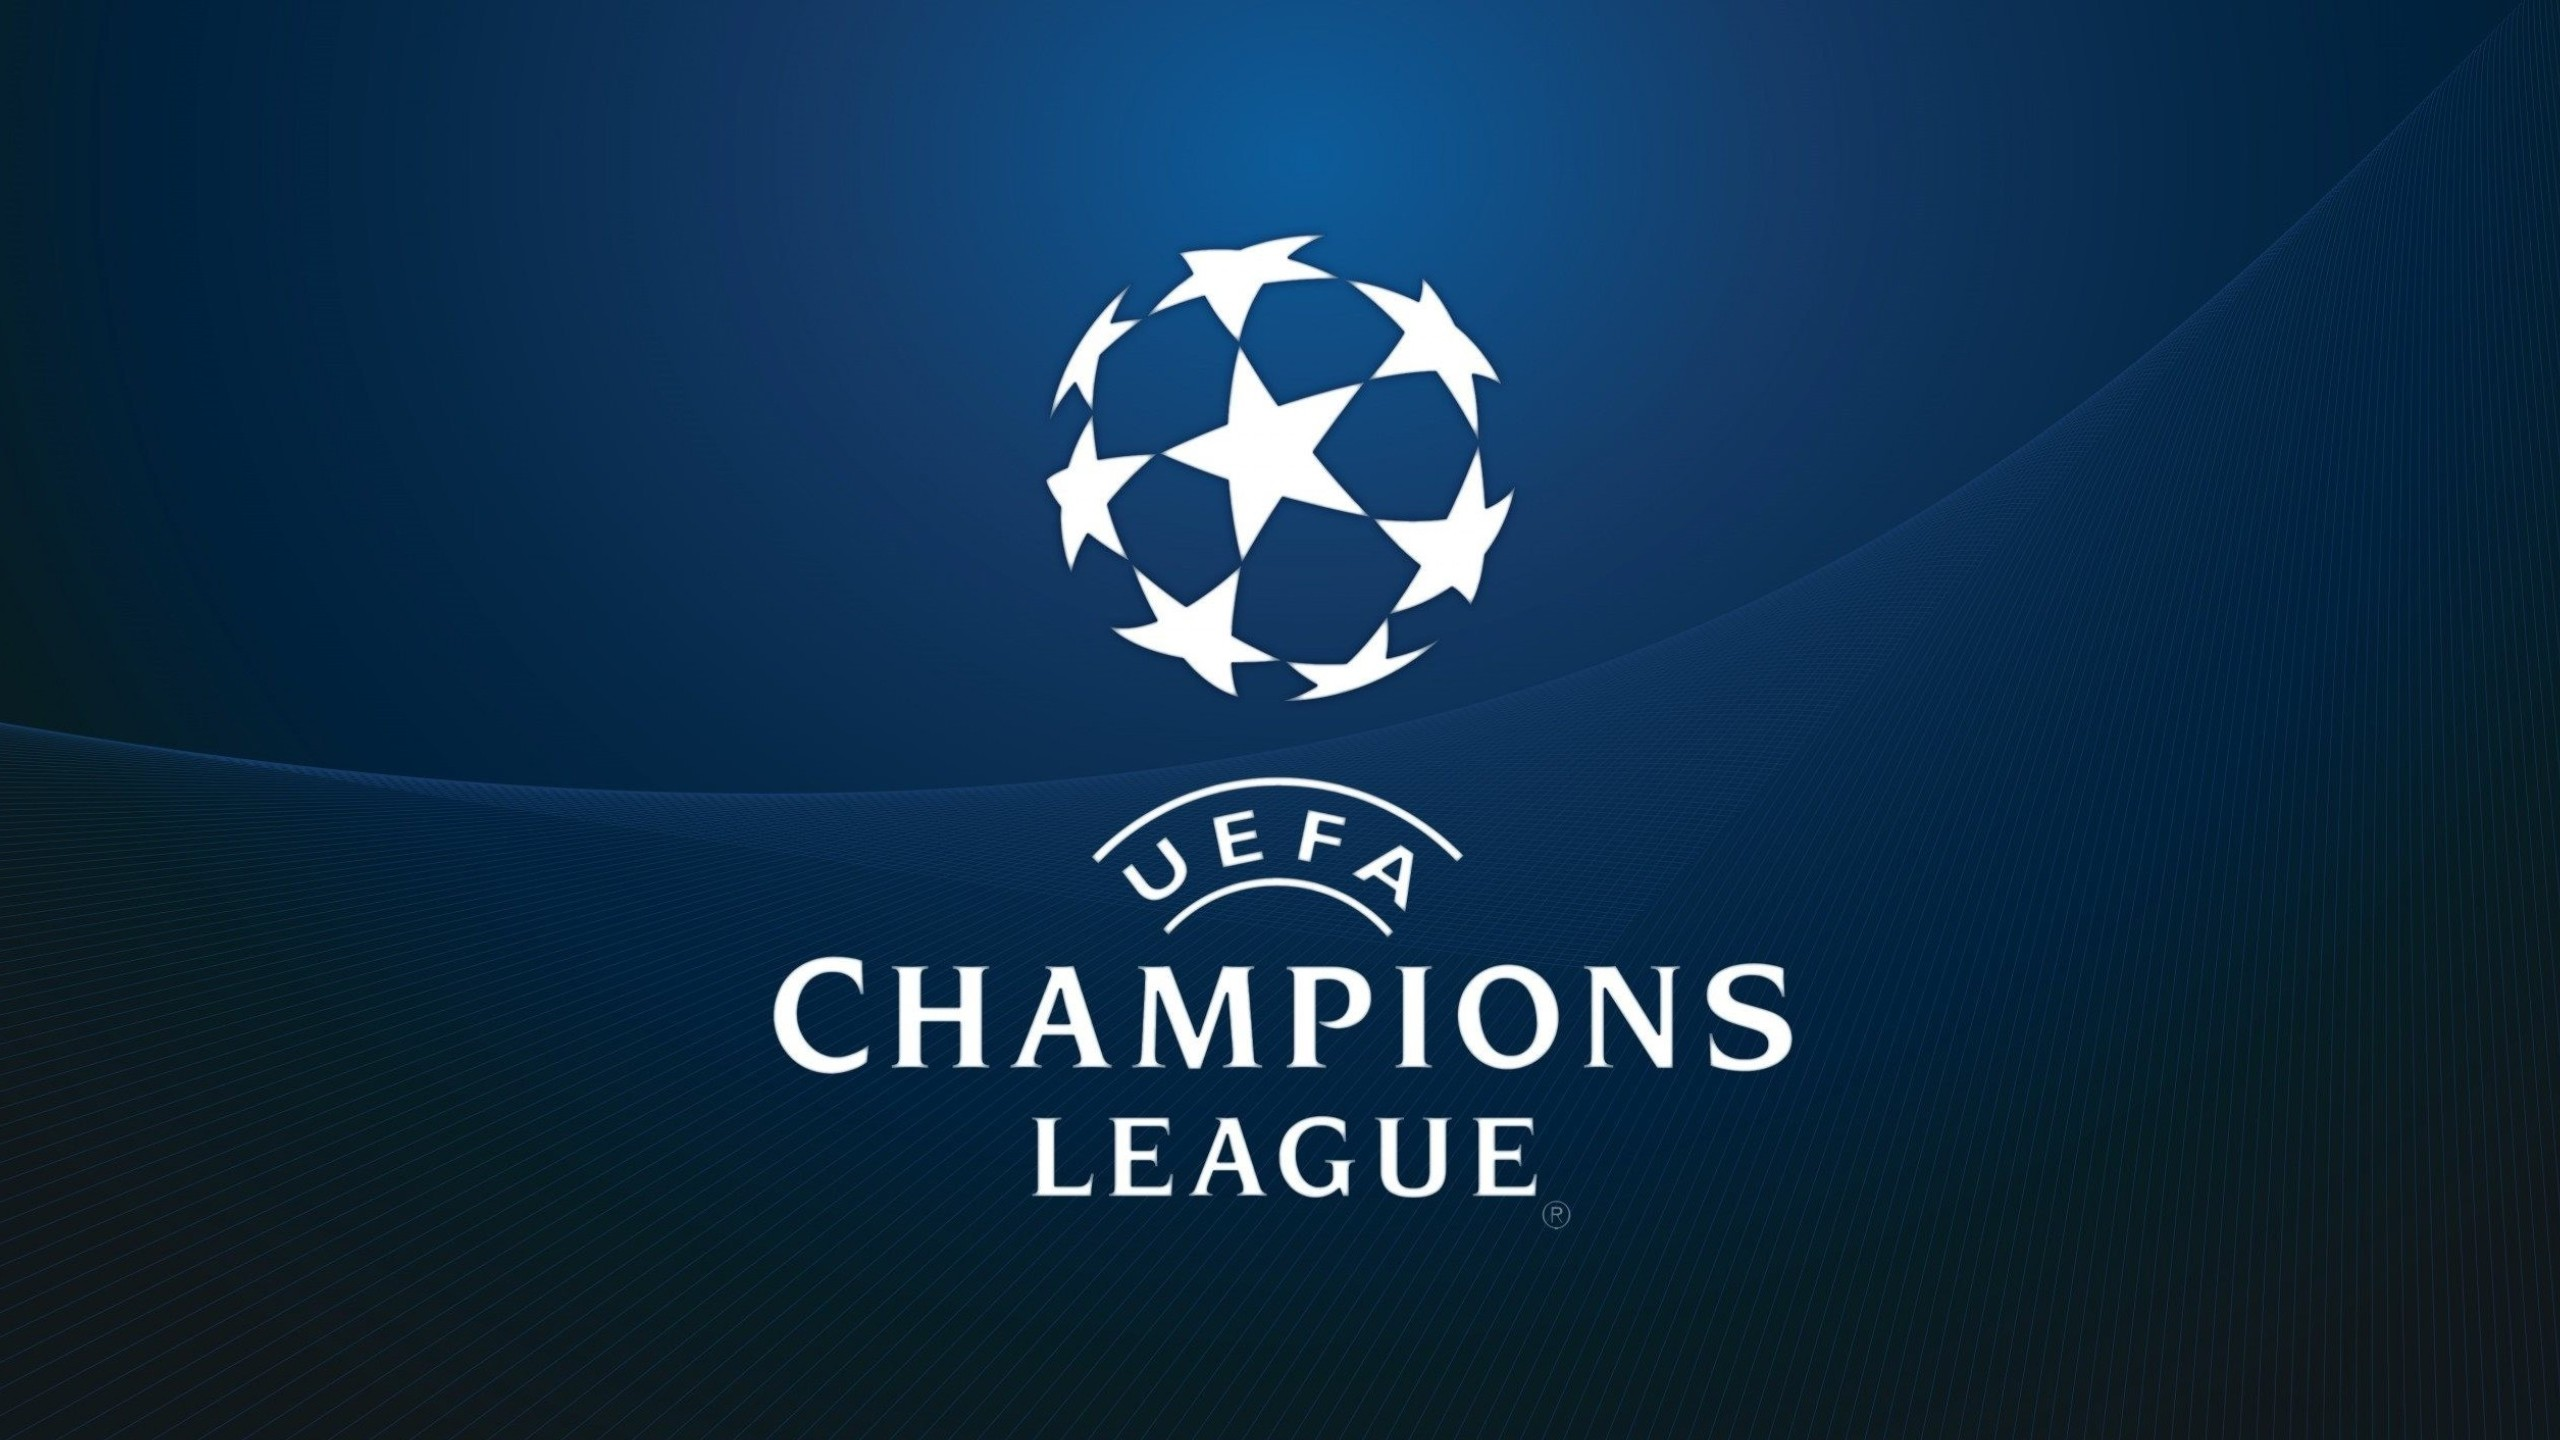 UEFA Champions League Wallpapers   HD Wallpapers 2560x1440